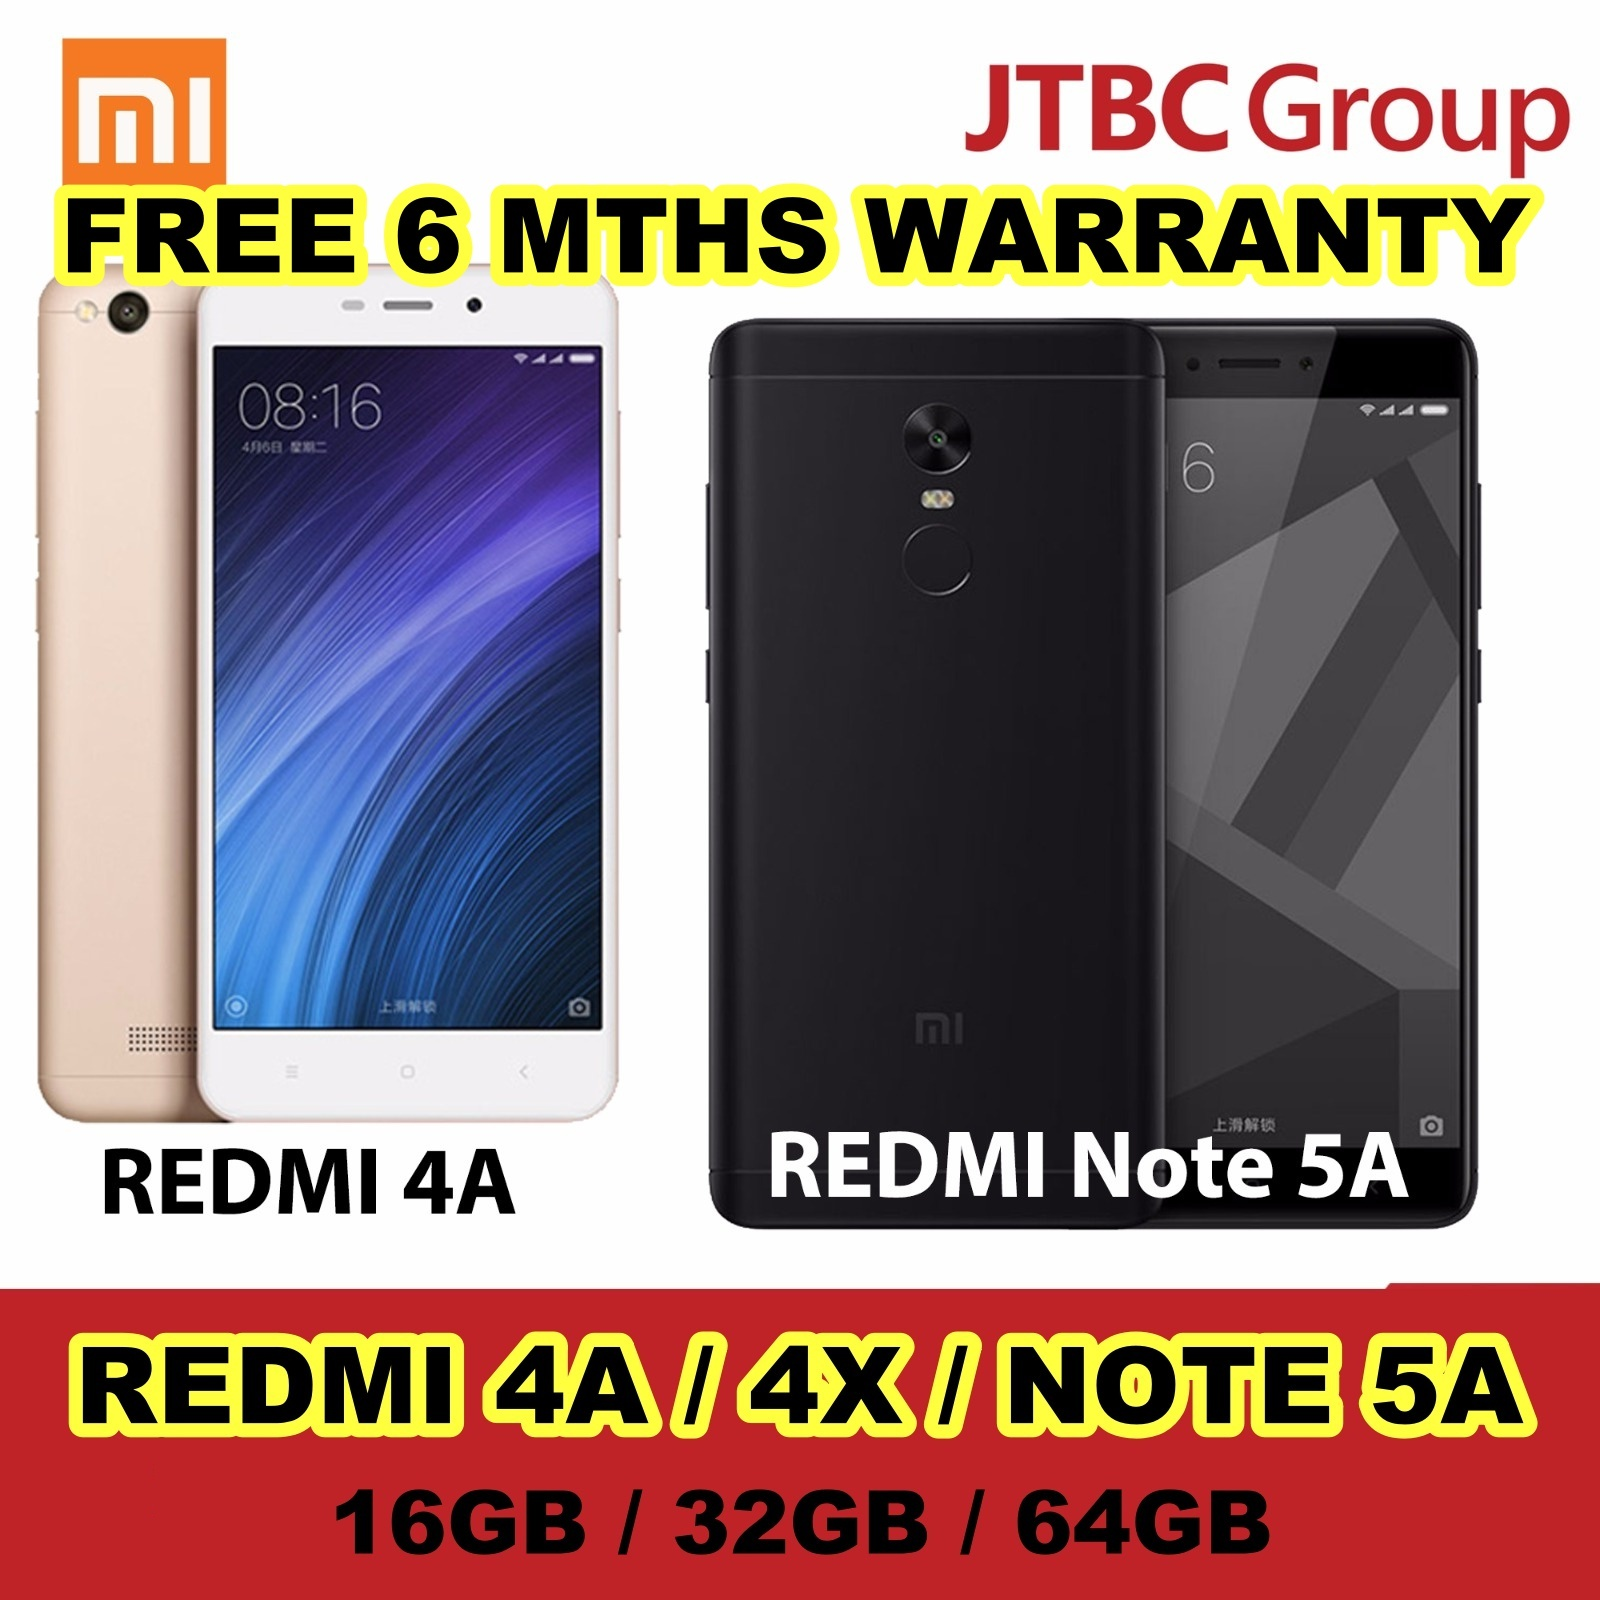 Qoo10 Xiaomi Redmi 4a 4x Mobile Devices 2gb 16gb Gold Show All Item Images